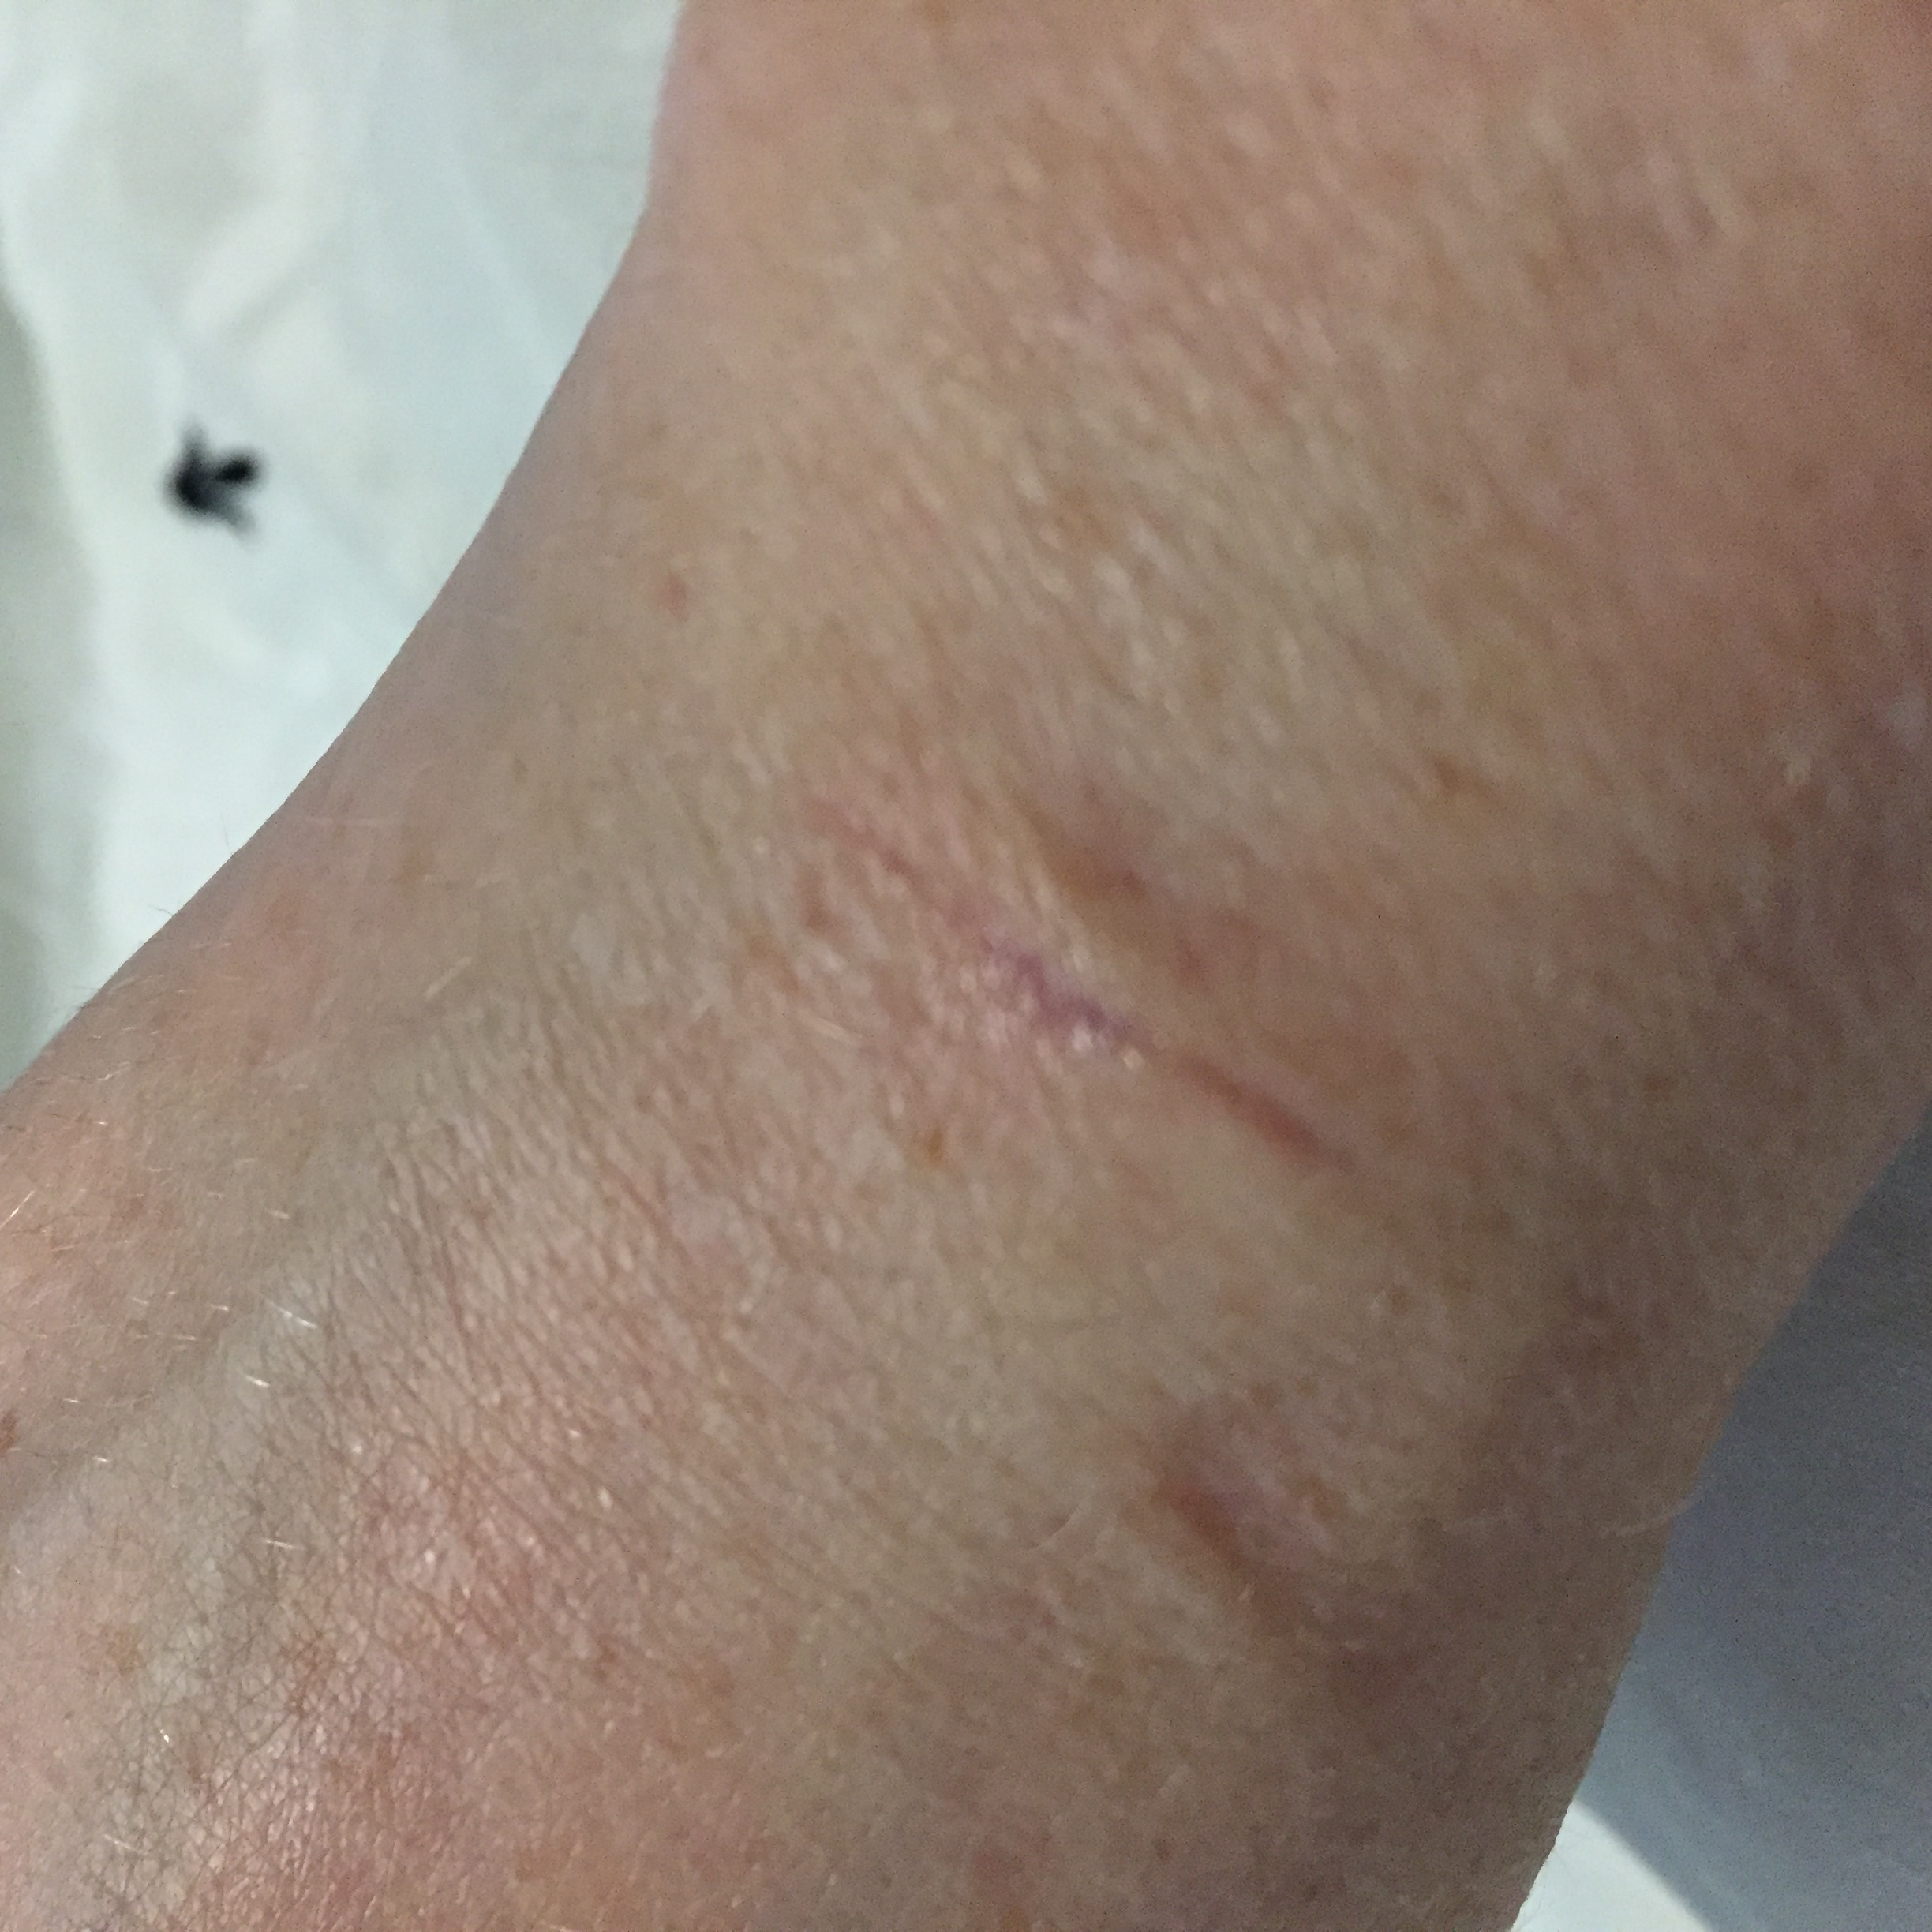 826DC554 50F9 47C1 9BFB 531DBFF14384 Ganglion Cyst Removal / Excision Recovery Pictures